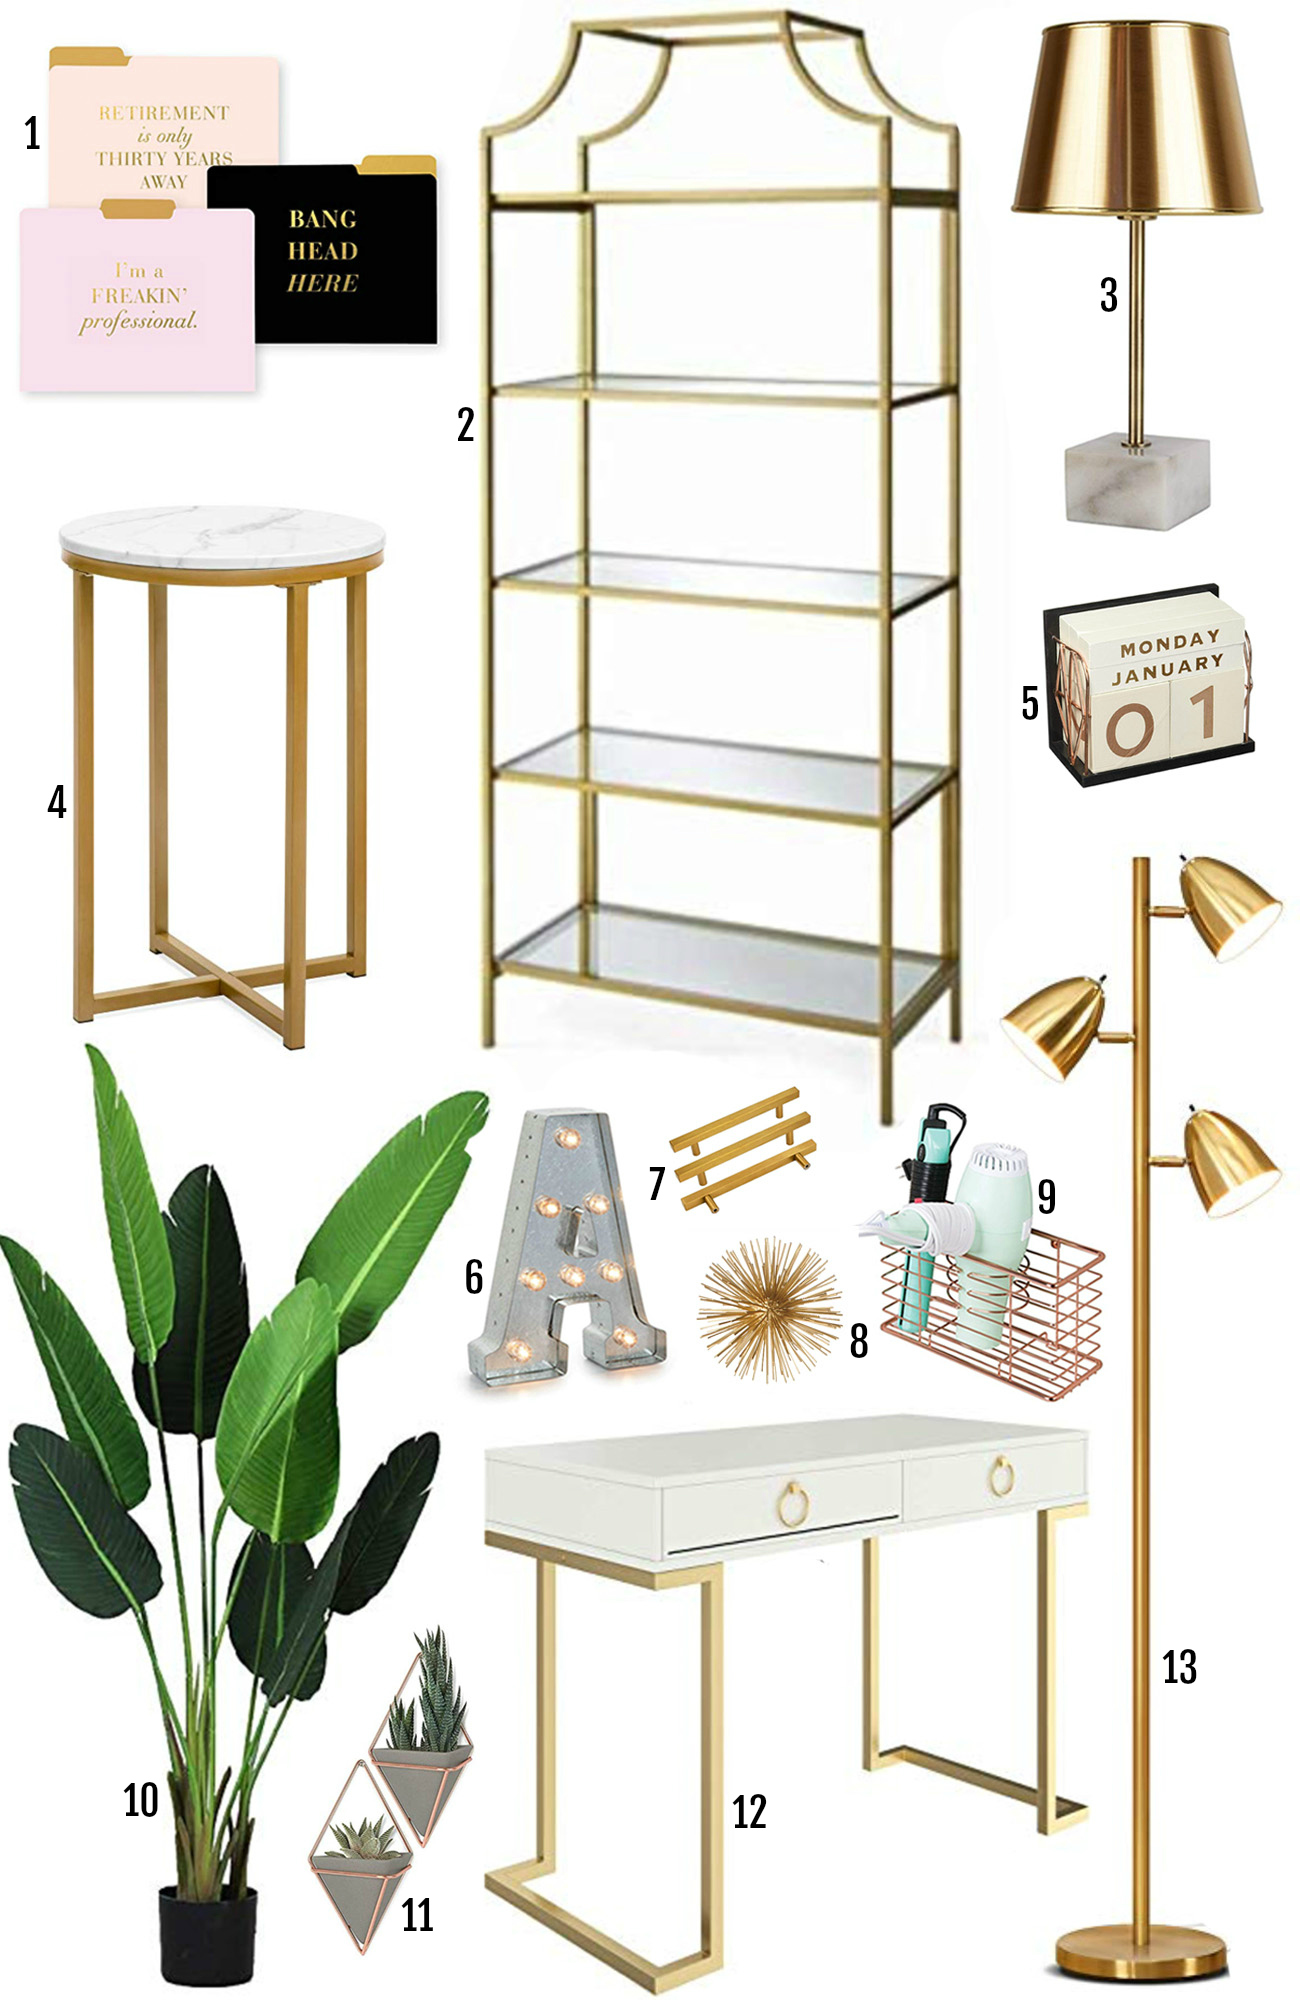 Amazon Prime affordable home decor finds | gold home decor | Amazon Prime | plants | gold table | gold lamp| Mash Elle lifestyle blogger